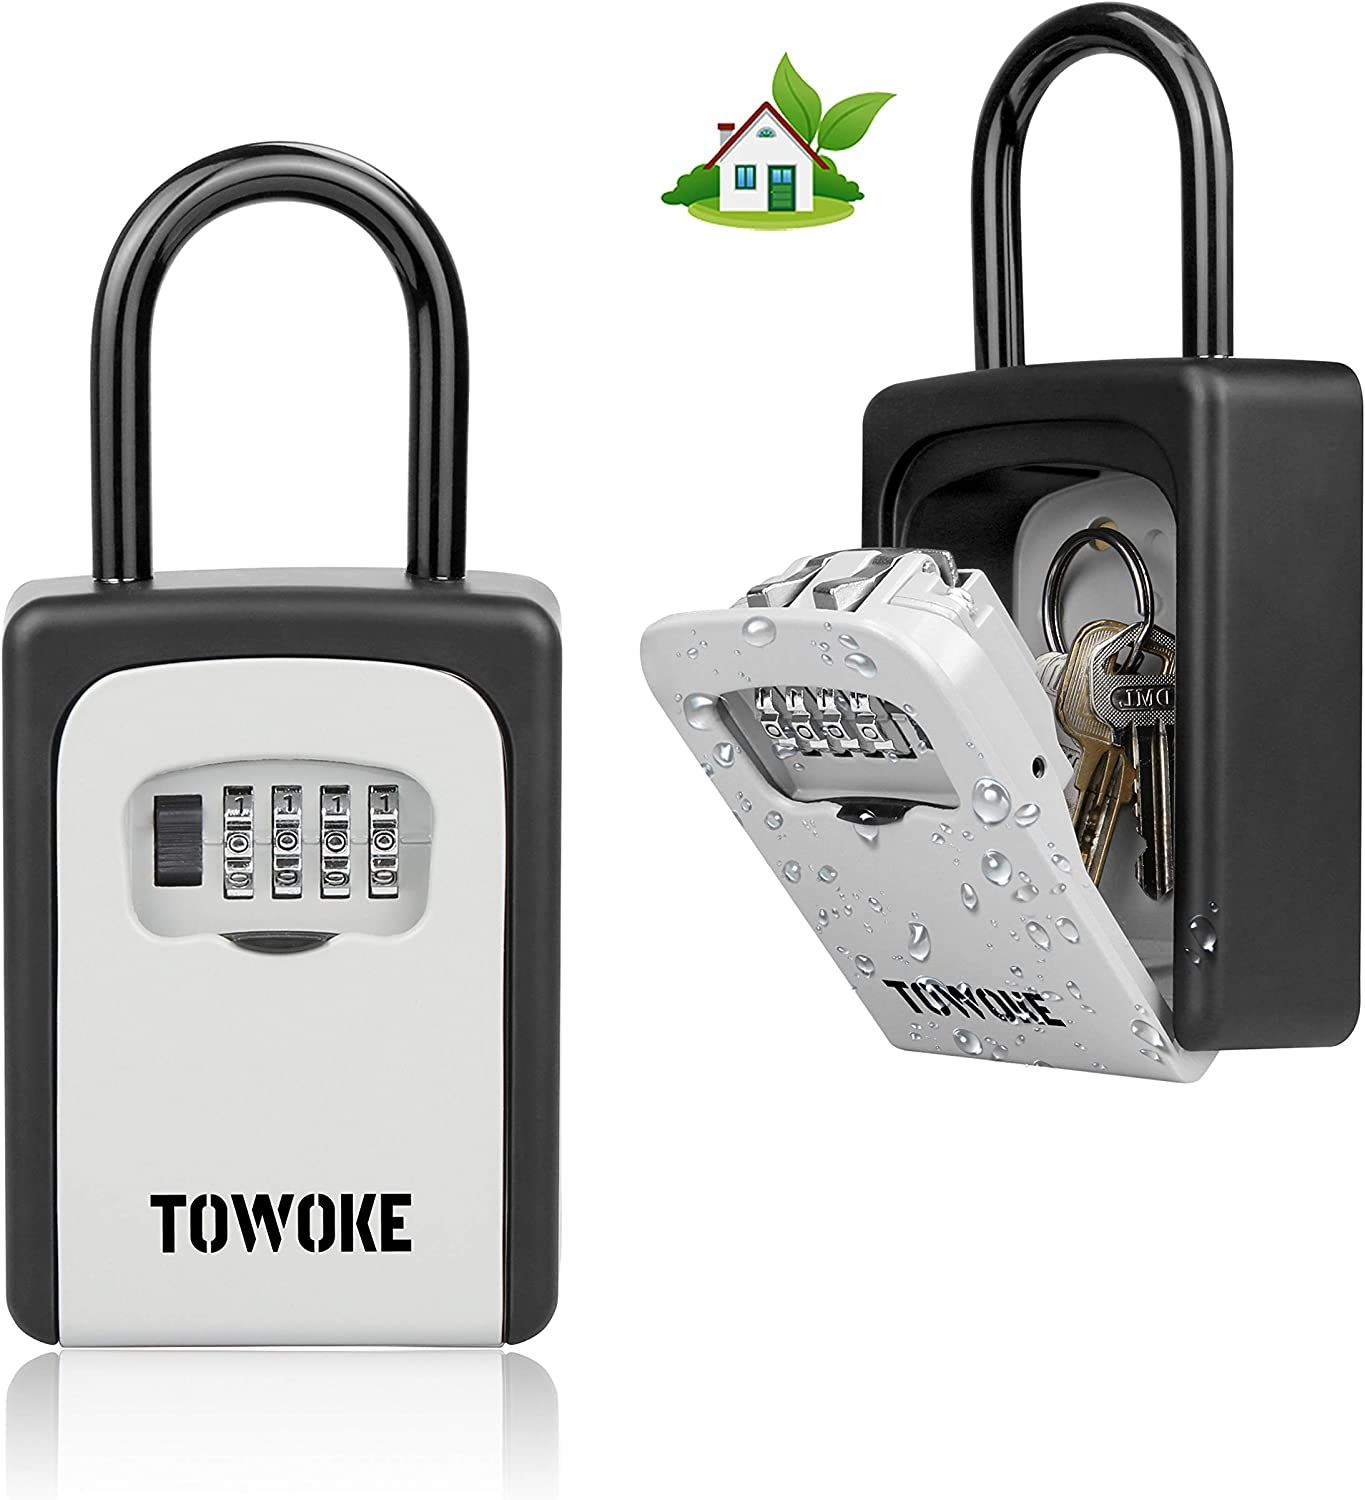 TOWOKE Key Lock Box For Outside - Weatherproof Lock box For House Key, Resettable 4-Digit Combination Lockbox, Key Storage with Loop for House, Hotels, Airbnb, Schools, Large Capacity -Updated Version